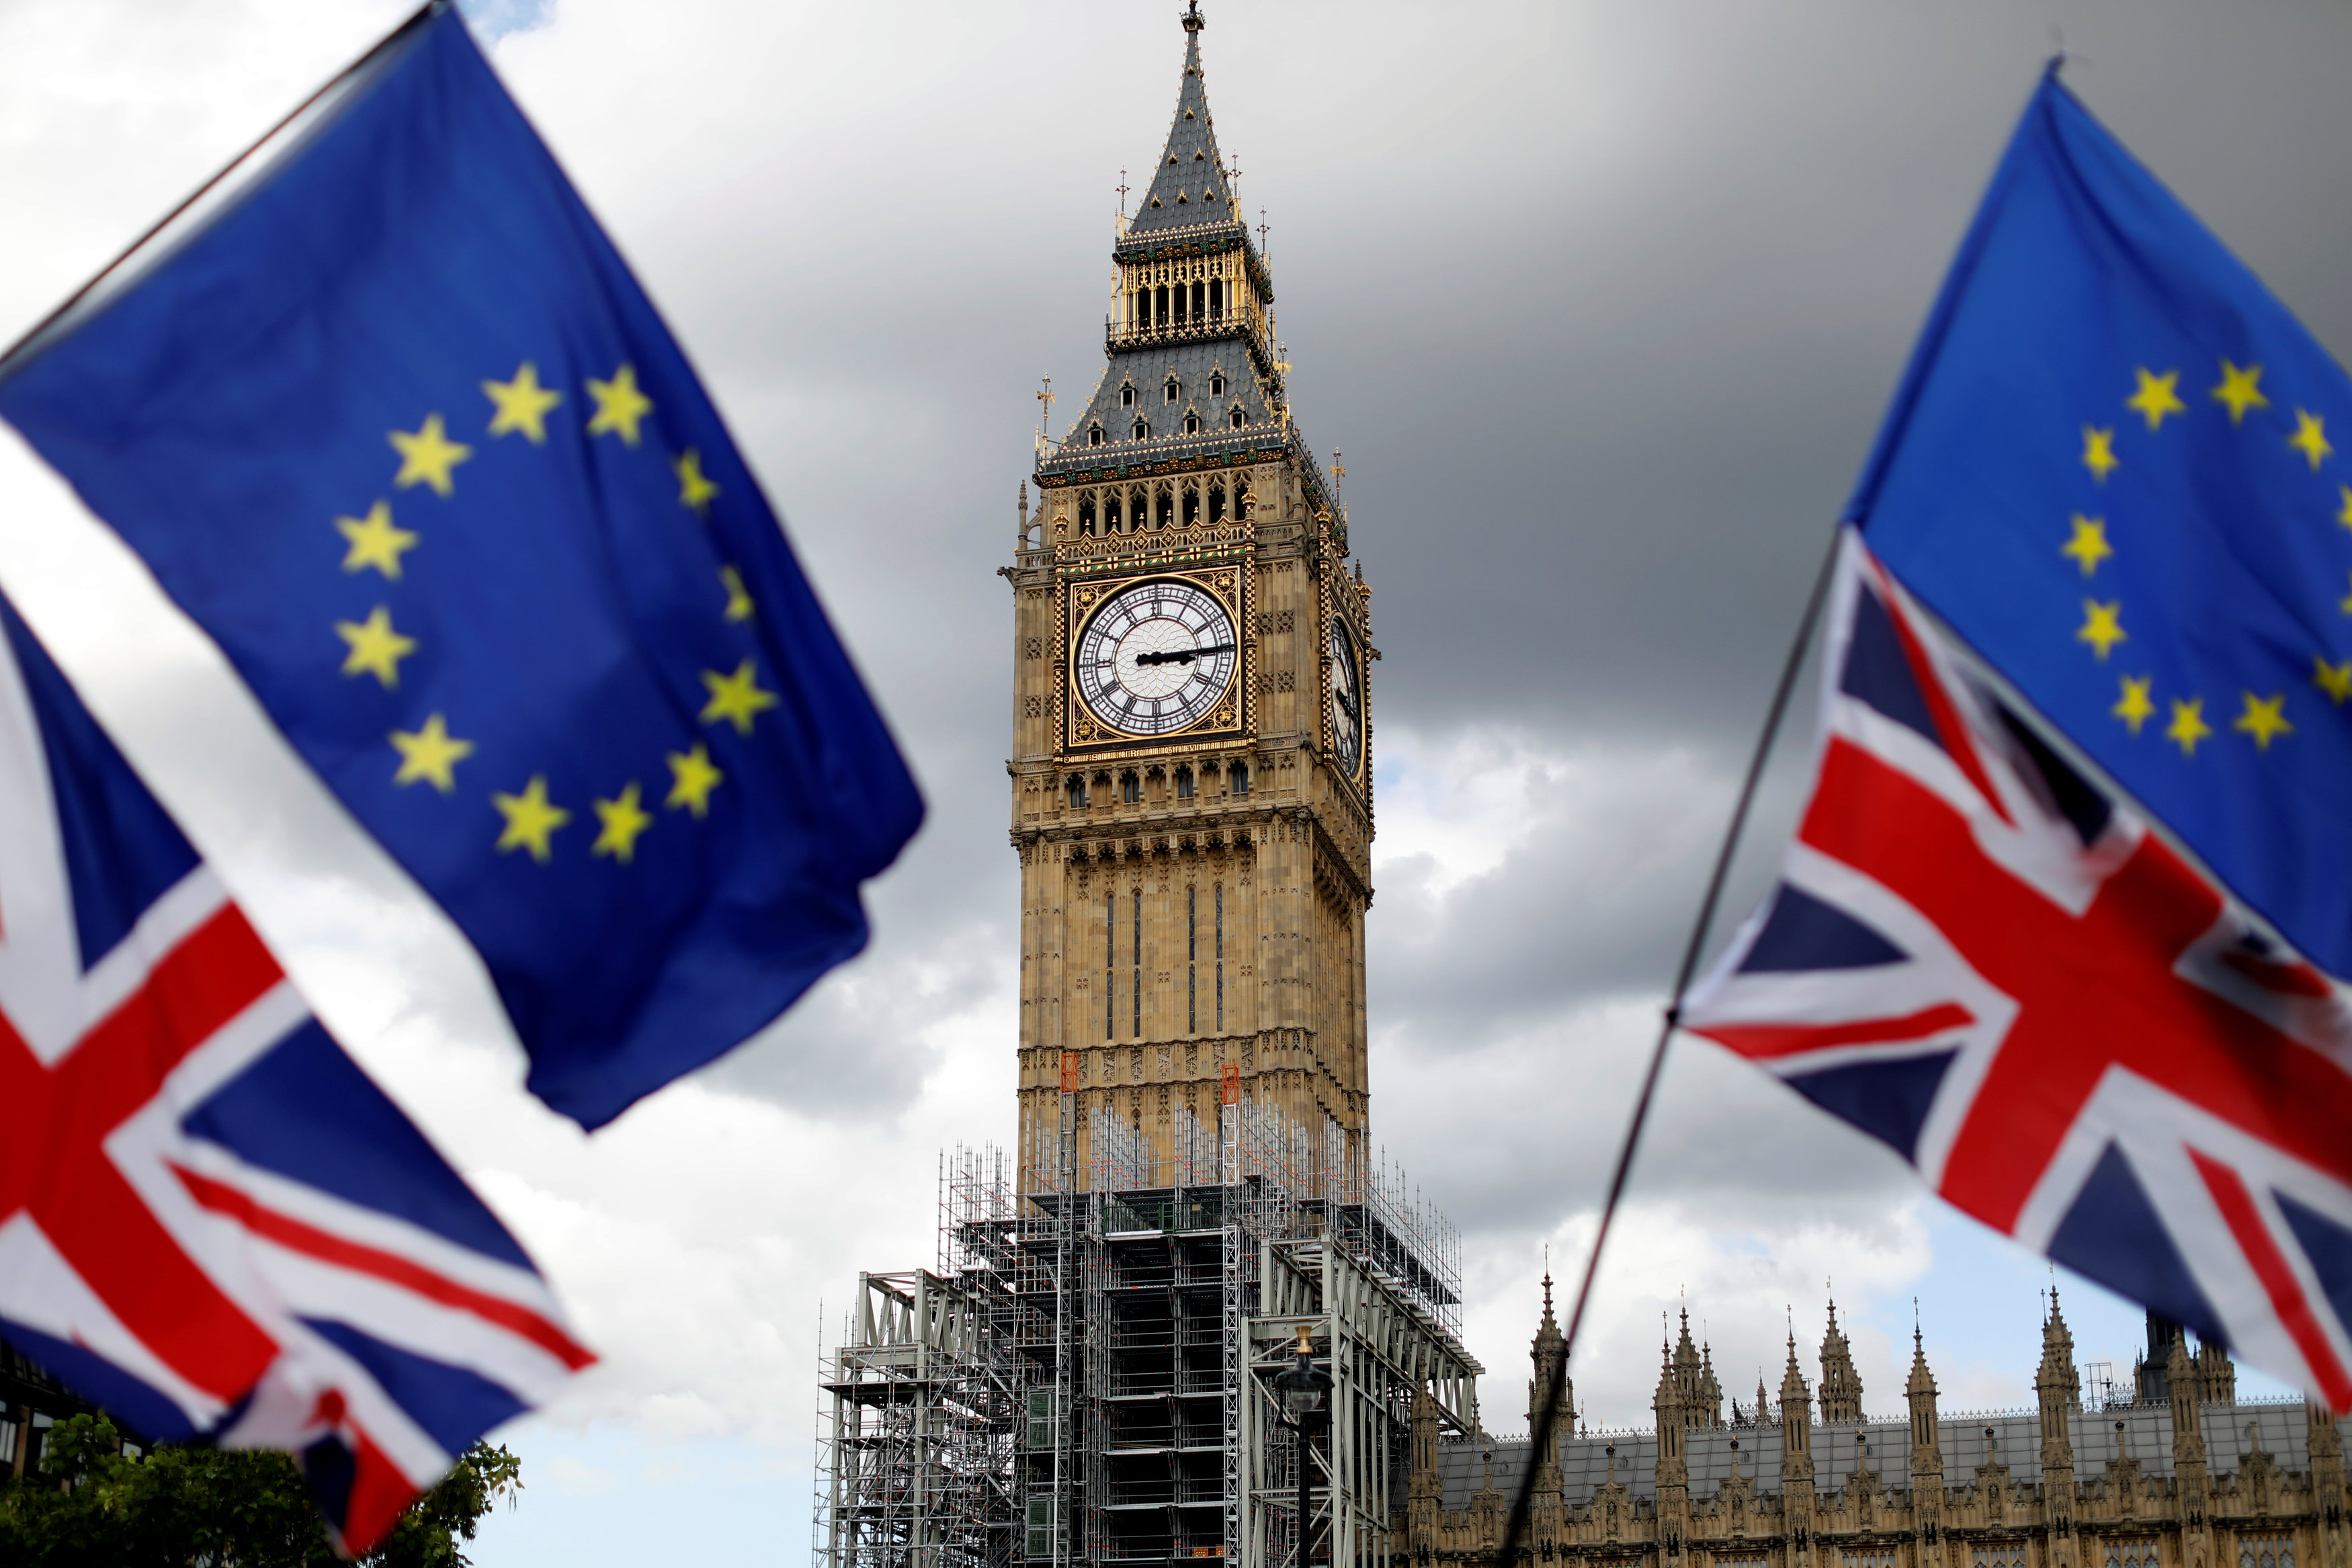 Beware the reach of taxman, Brexit bankers told